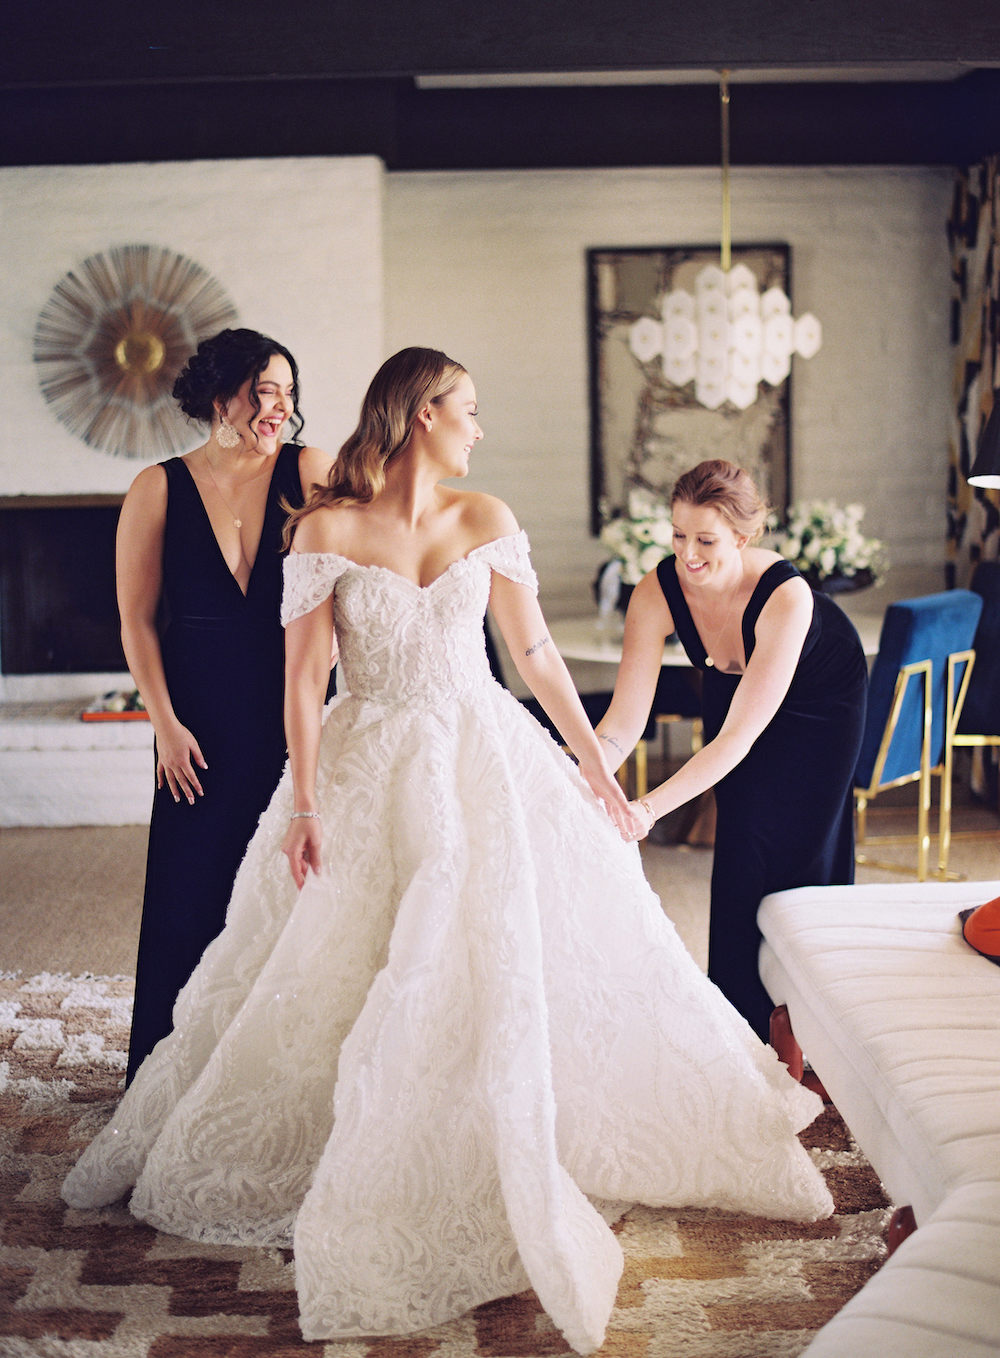 bride putting on off-the-shoulder wedding dress with her bridesmaids' help